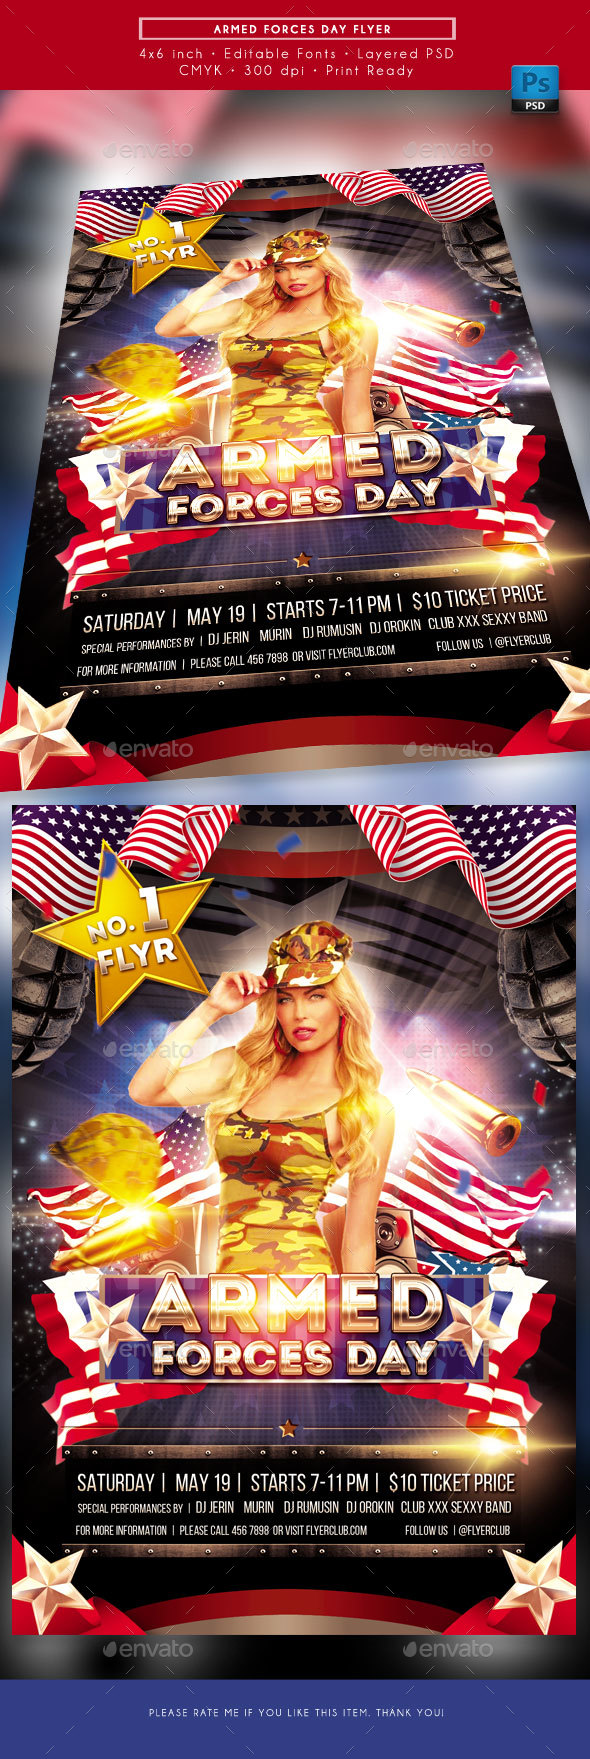 Armed Forces Day Flyer - Events Flyers